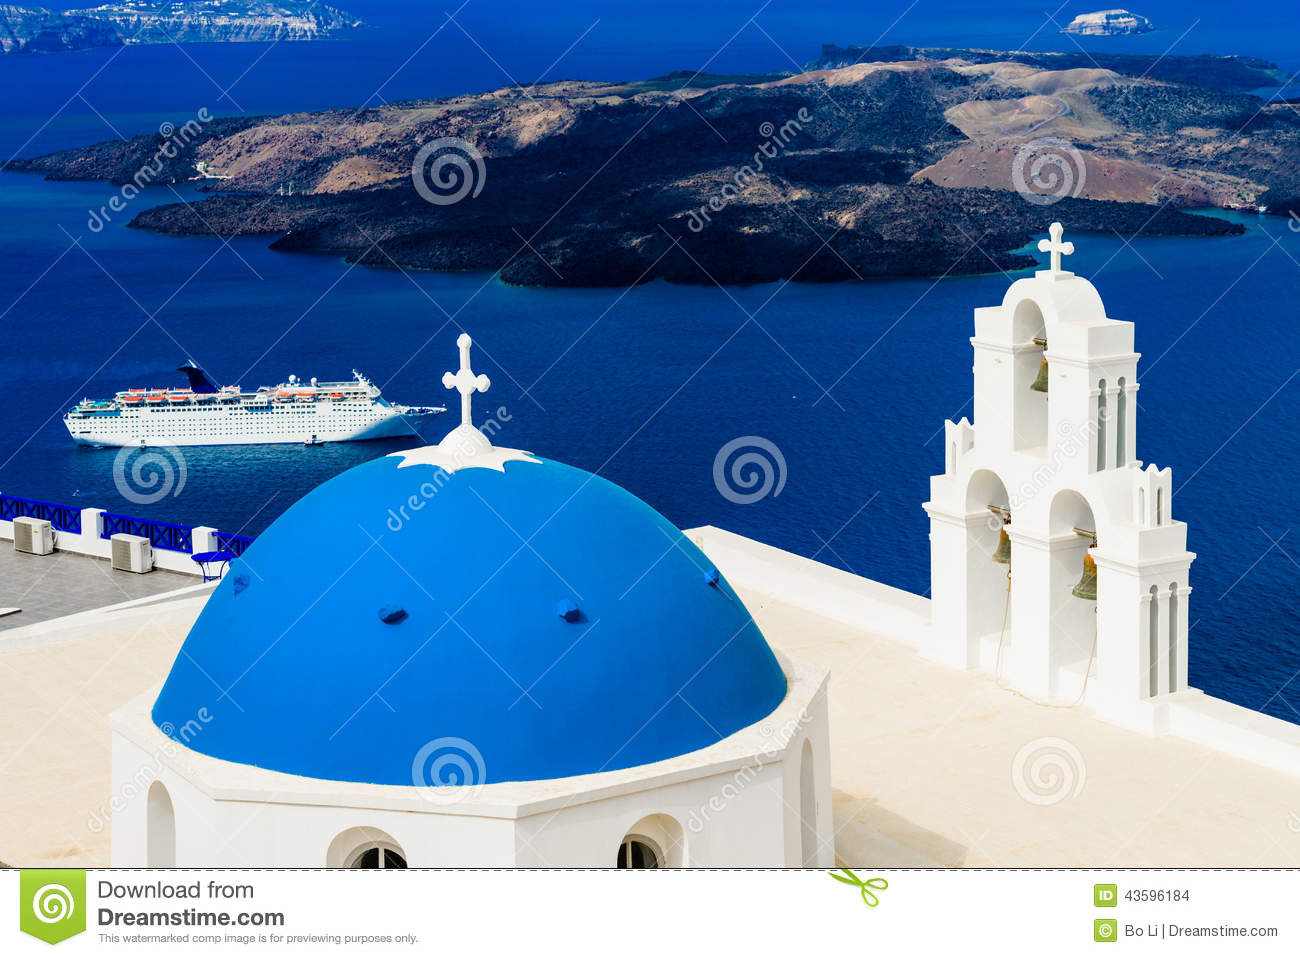 Blue Dome Church and Cruise